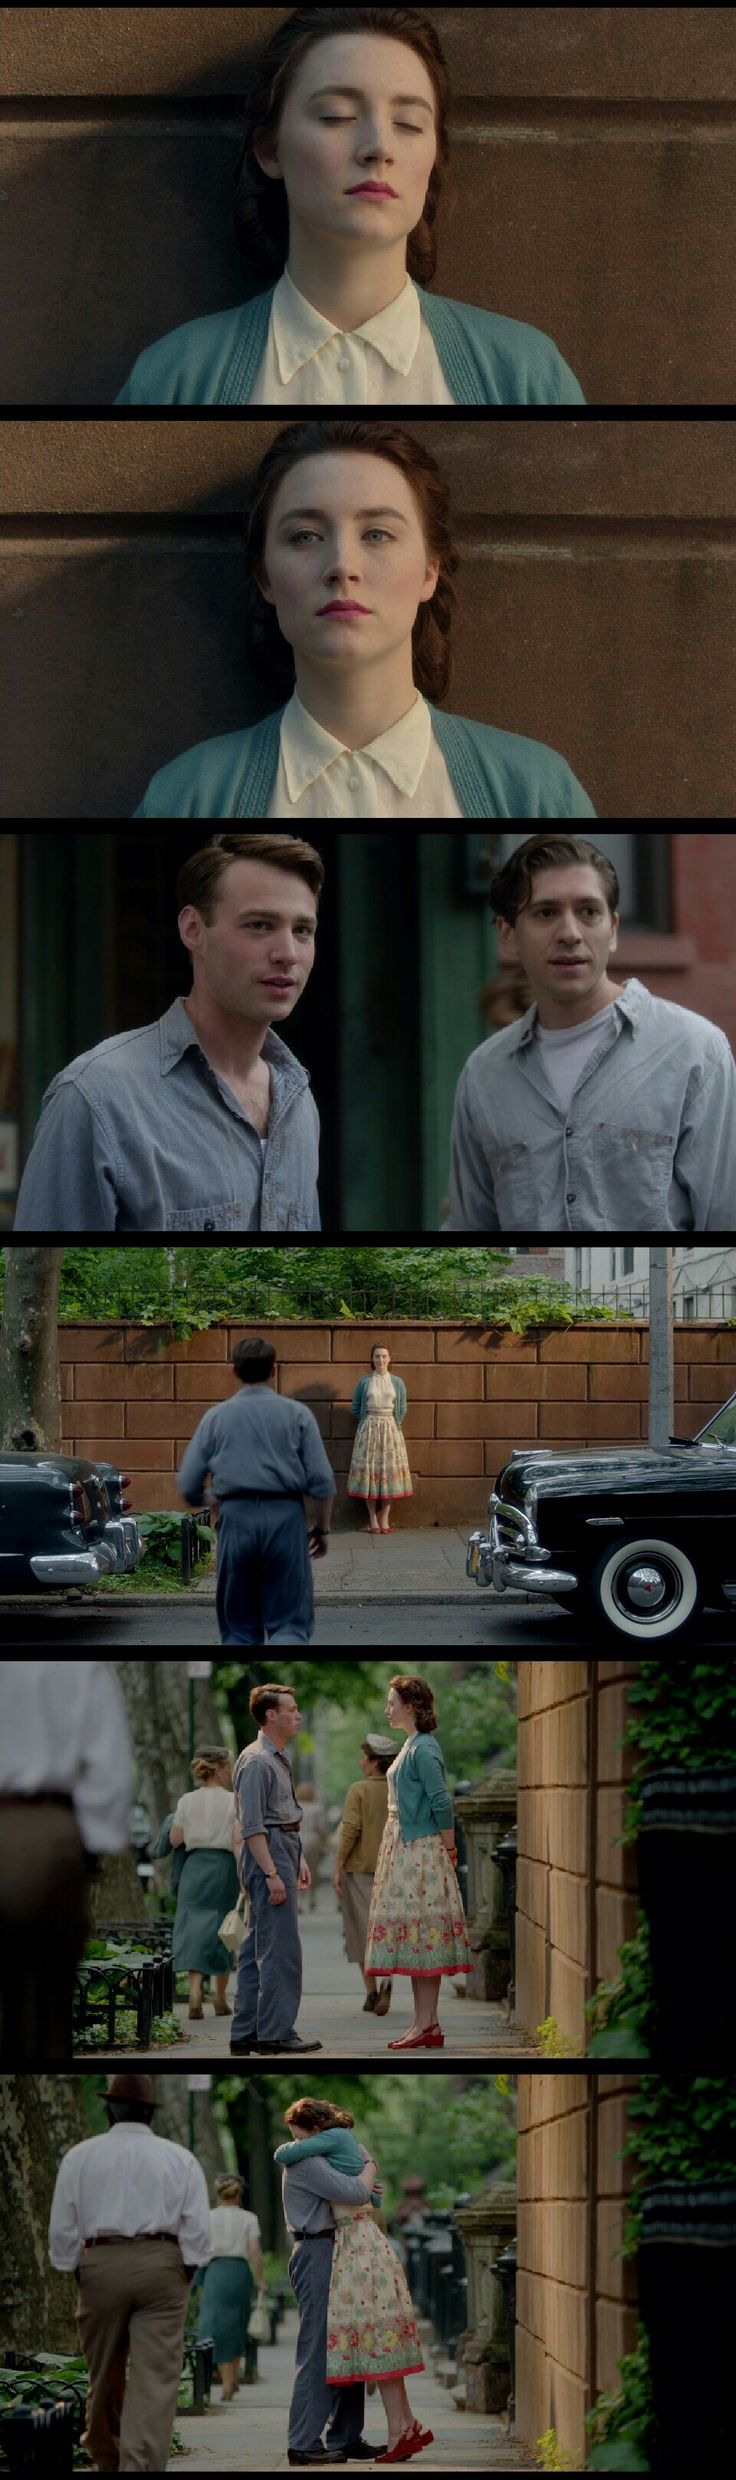 """-Brooklyn (2015) movie final scene. """"And one day the sun will come out - you might not even notice straight away, it'll be that faint. And then you'll catch yourself thinking about something or someone who has no connection with the past. Someone who's only yours. And you'll realize... that this is where your life is."""" [Movie Last Line]"""